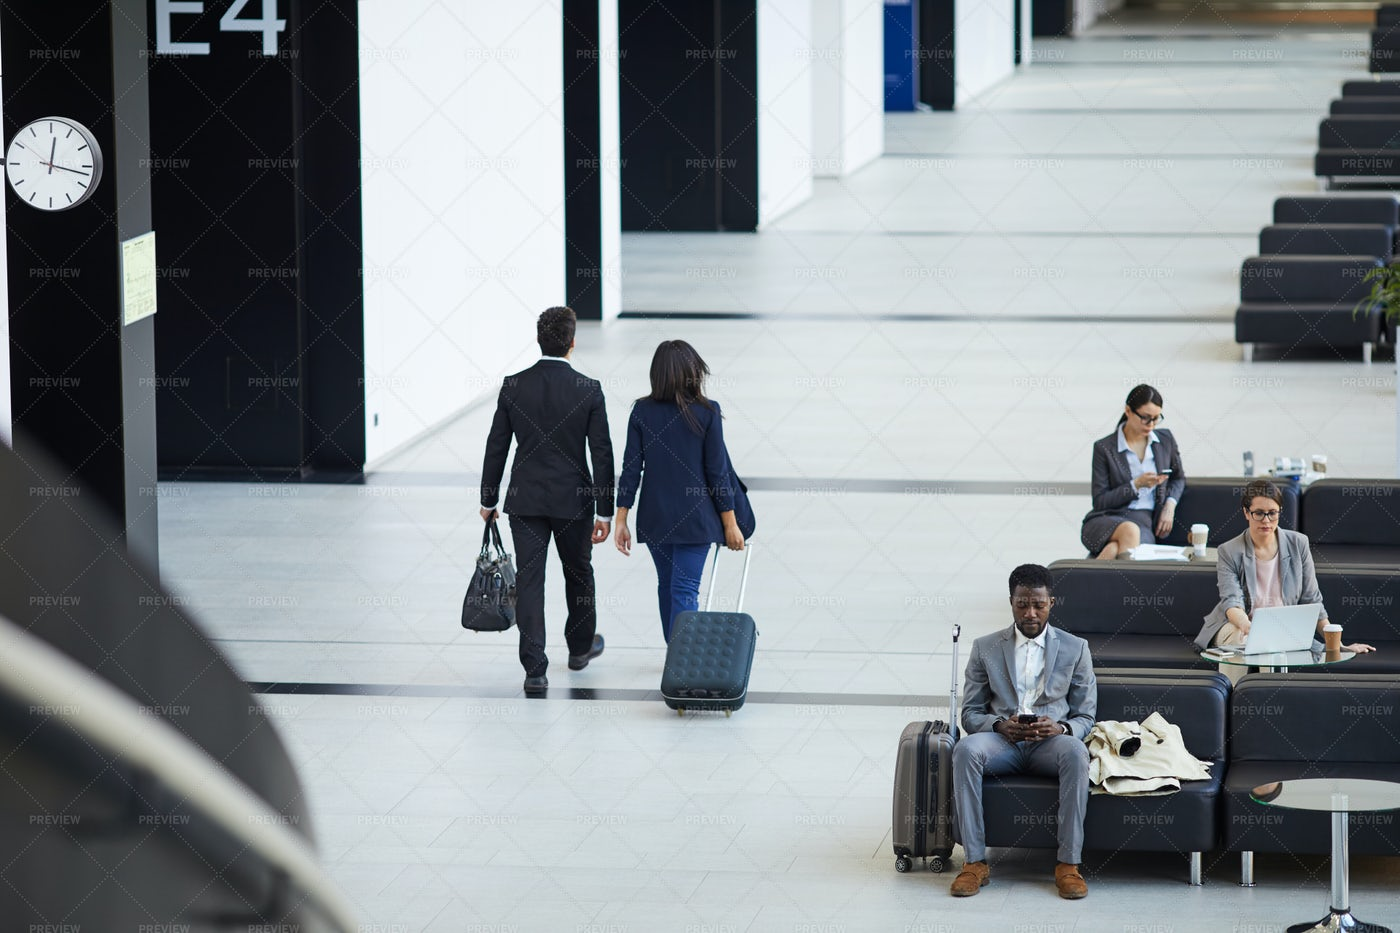 Business People Going To Board...: Stock Photos